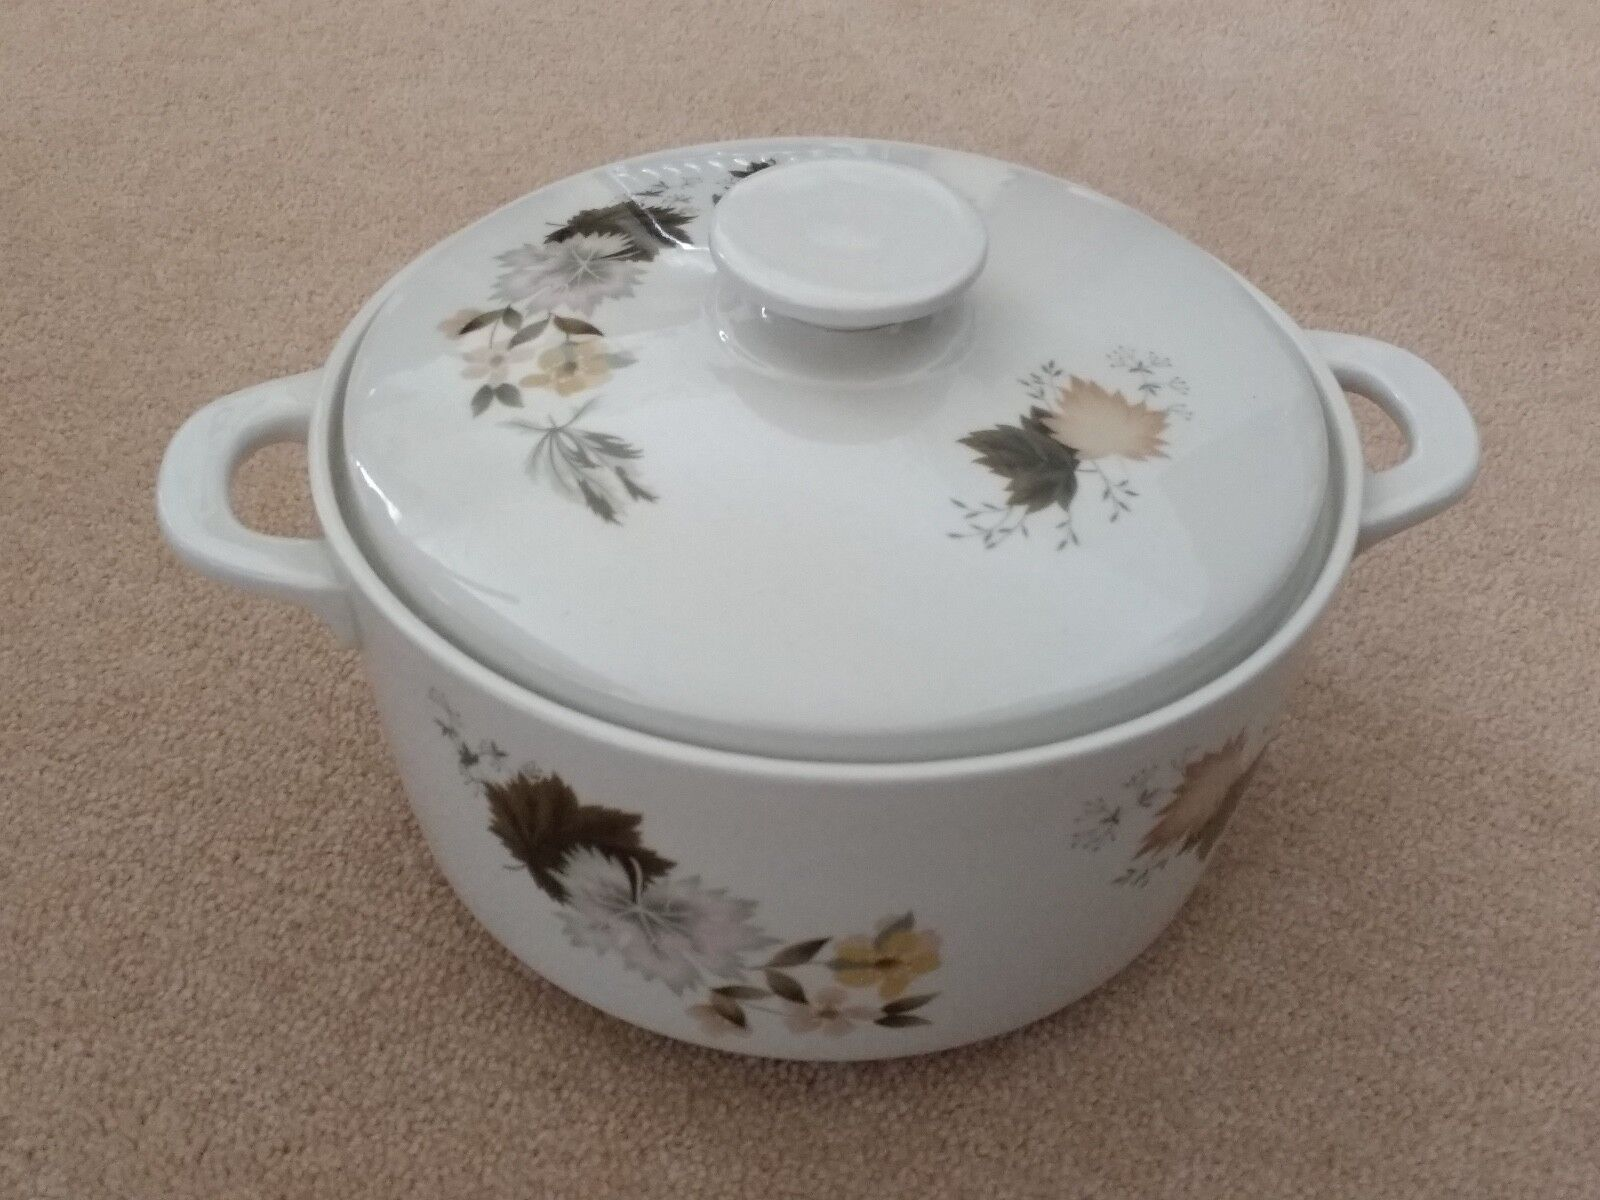 Royal Doulton Westwood  Oven to Table  Covered Casserole Dish 3pt